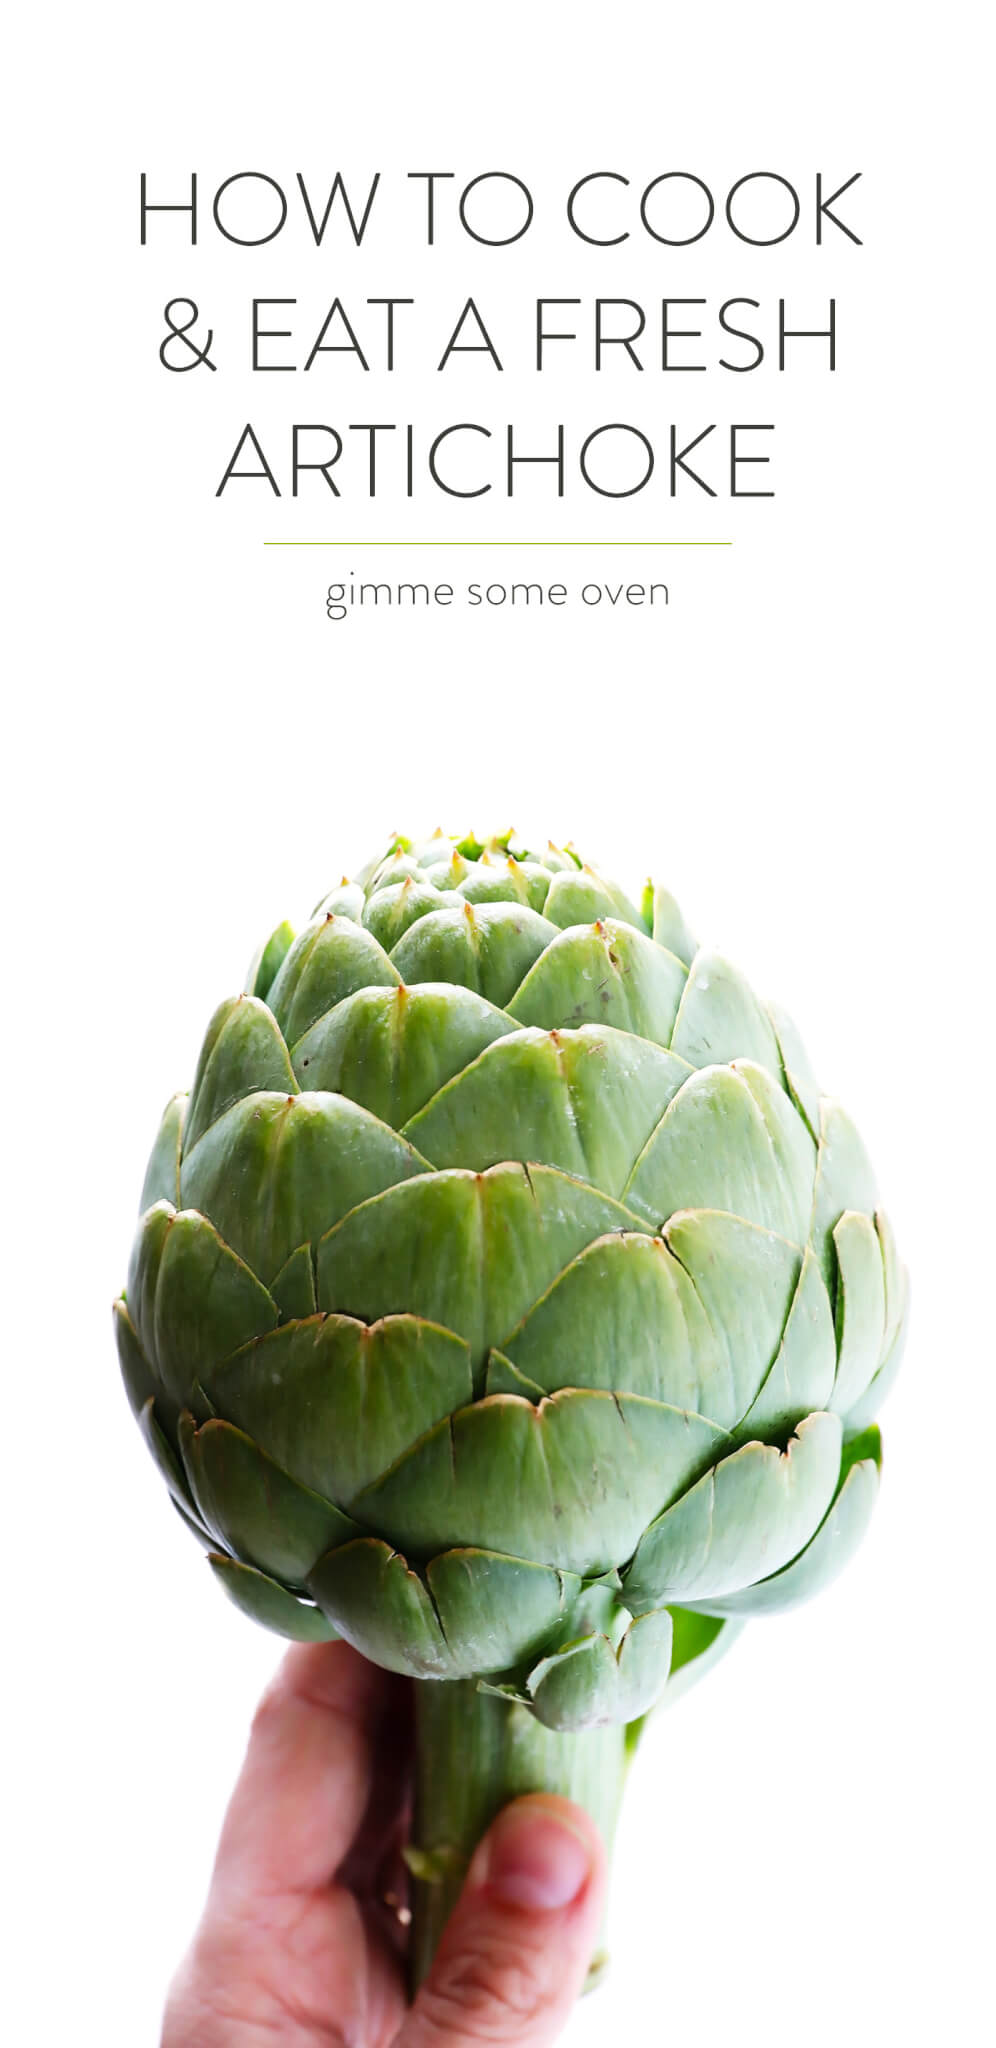 How To Cook and Eat A Fresh Artichoke